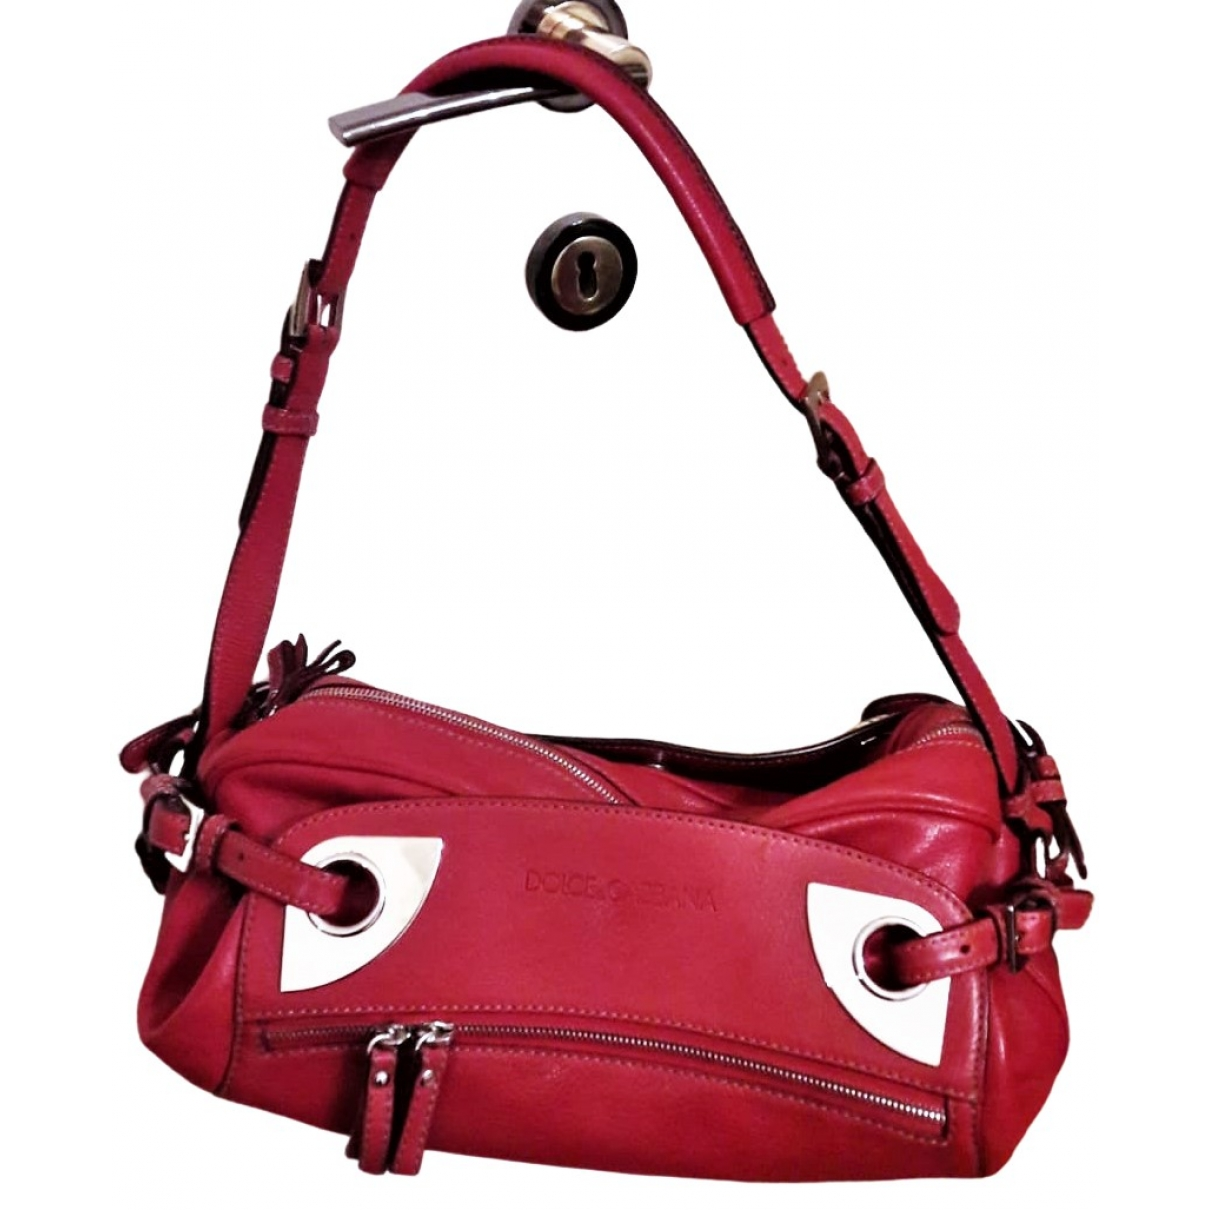 Dolce & Gabbana \N Red Leather handbag for Women \N